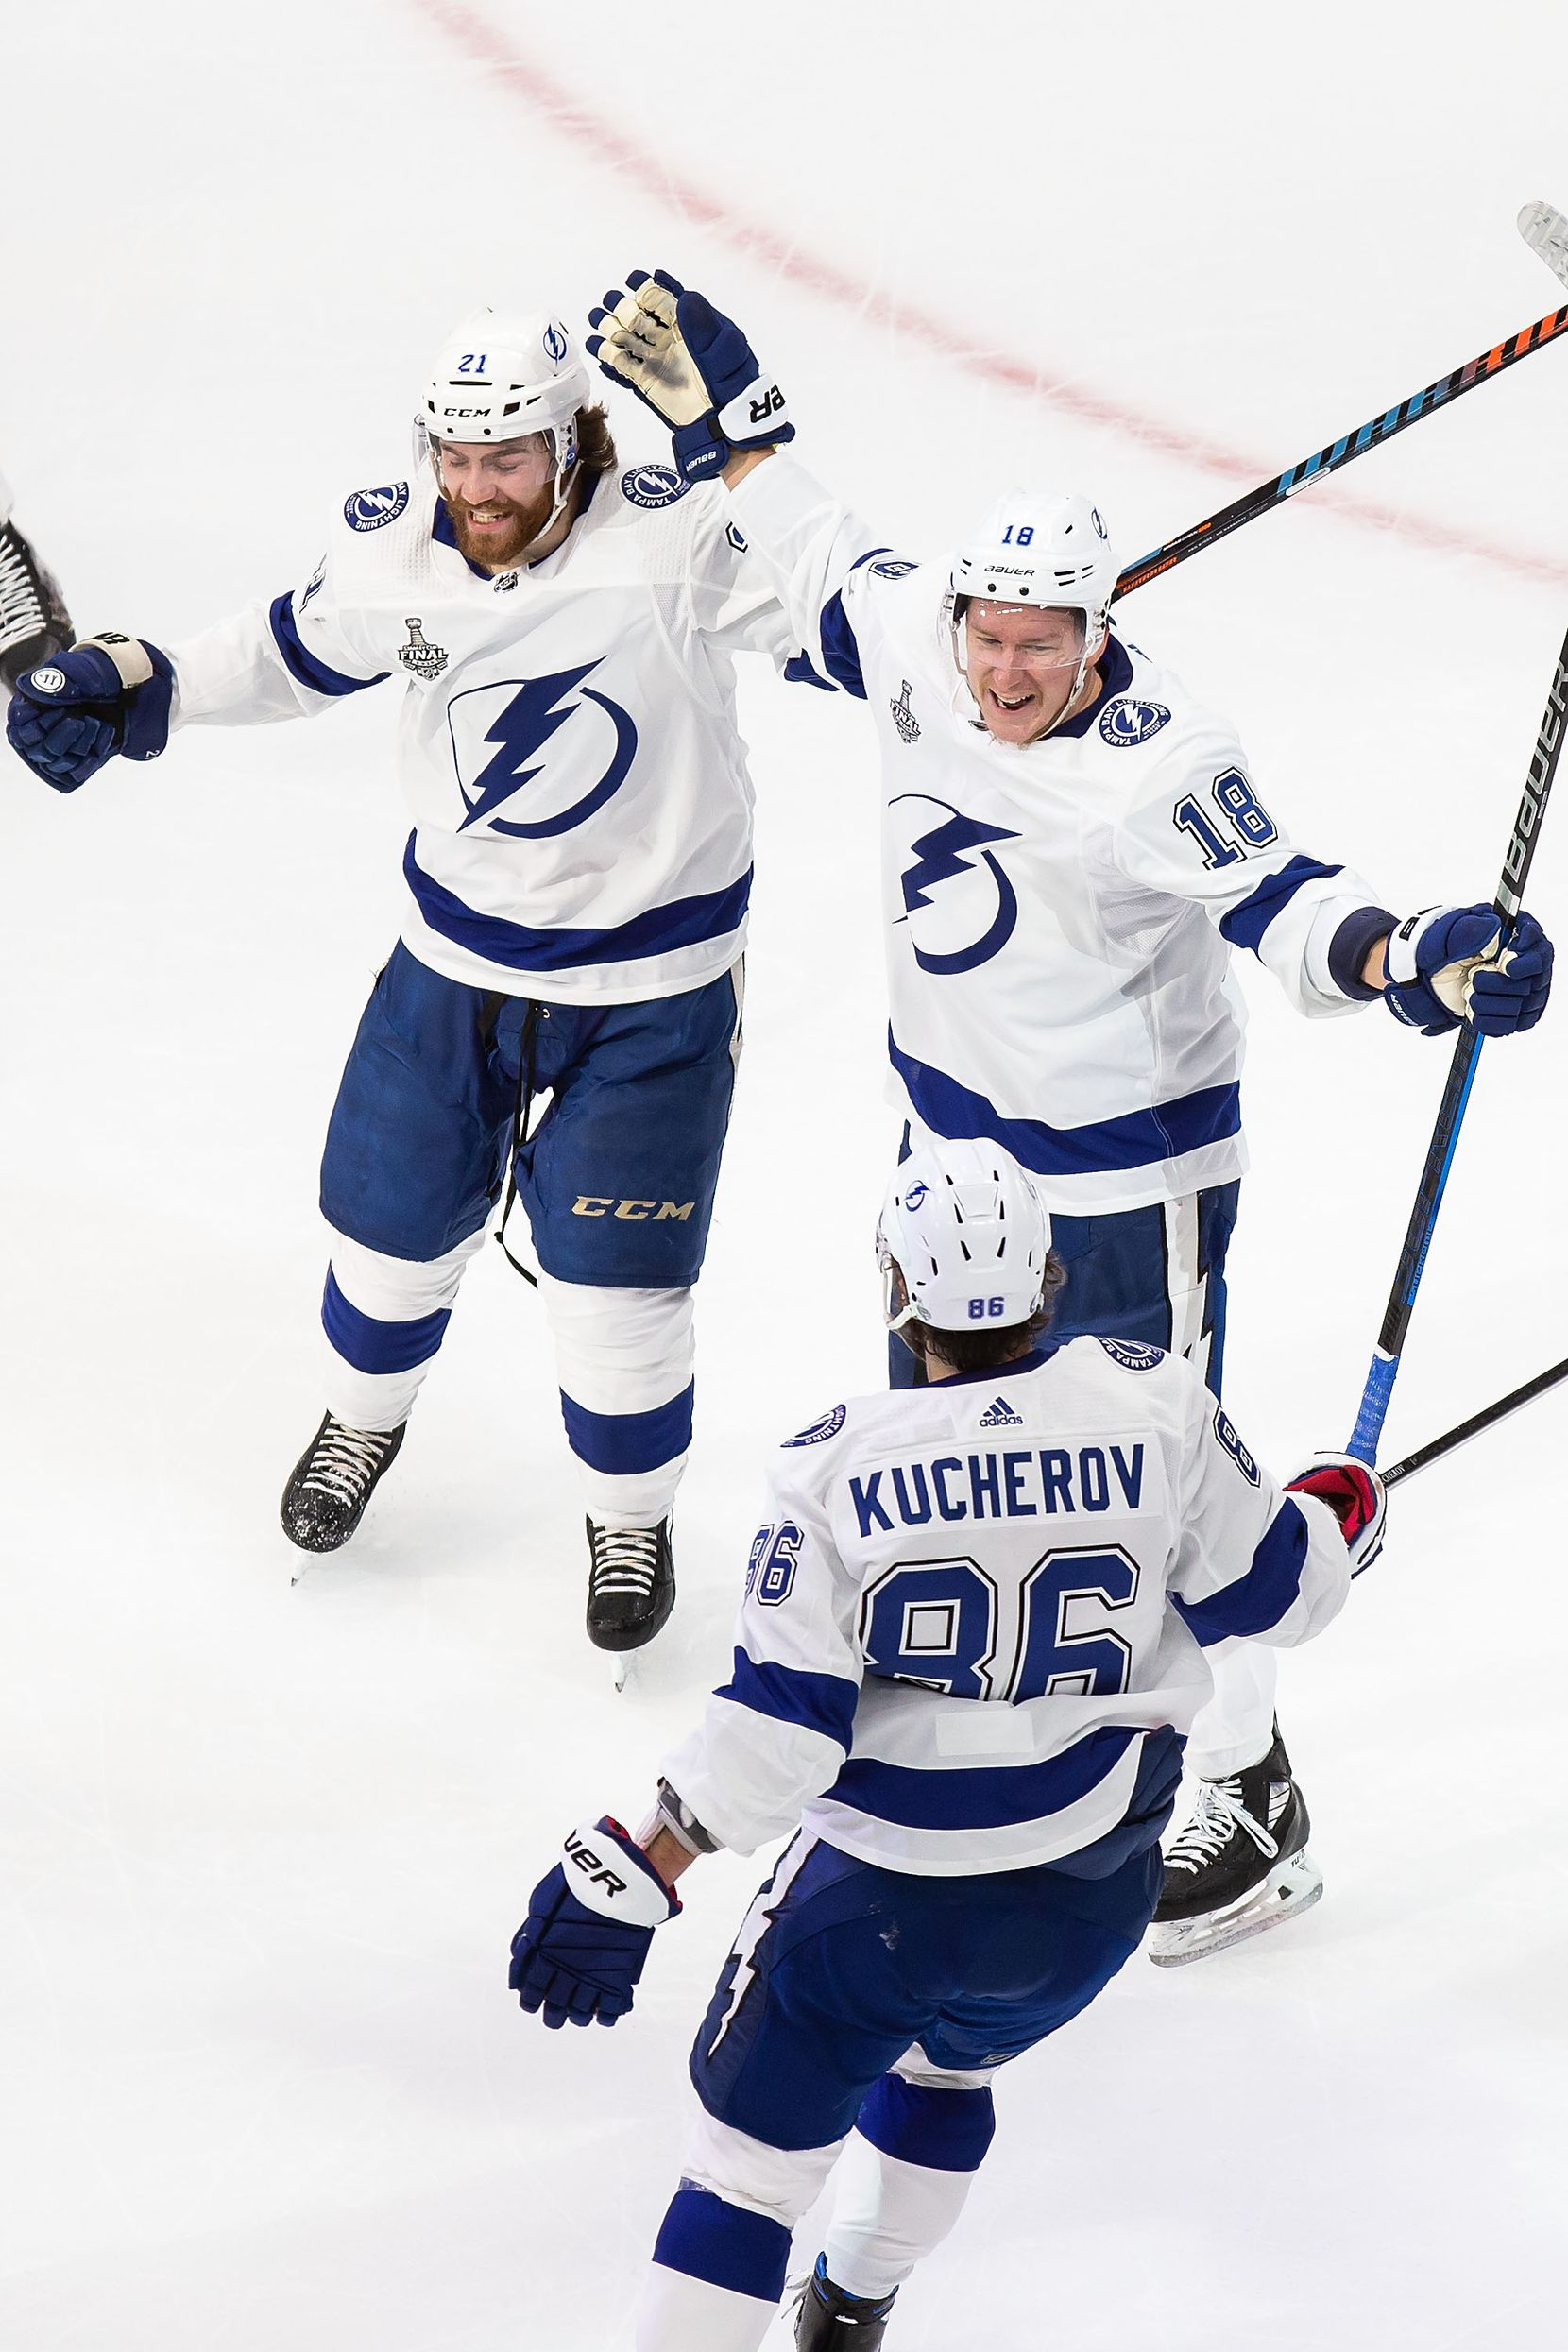 Brayden Point (21), Ondrej Palat (18) and Nikita Kucherov (86) of the Tampa Bay Lightning celebrate Palat's goal against the Dallas Stars during Game Three of the Stanley Cup Final at Rogers Place in Edmonton, Alberta, Canada on Wednesday, September 23, 2020. (Codie McLachlan/Special Contributor)